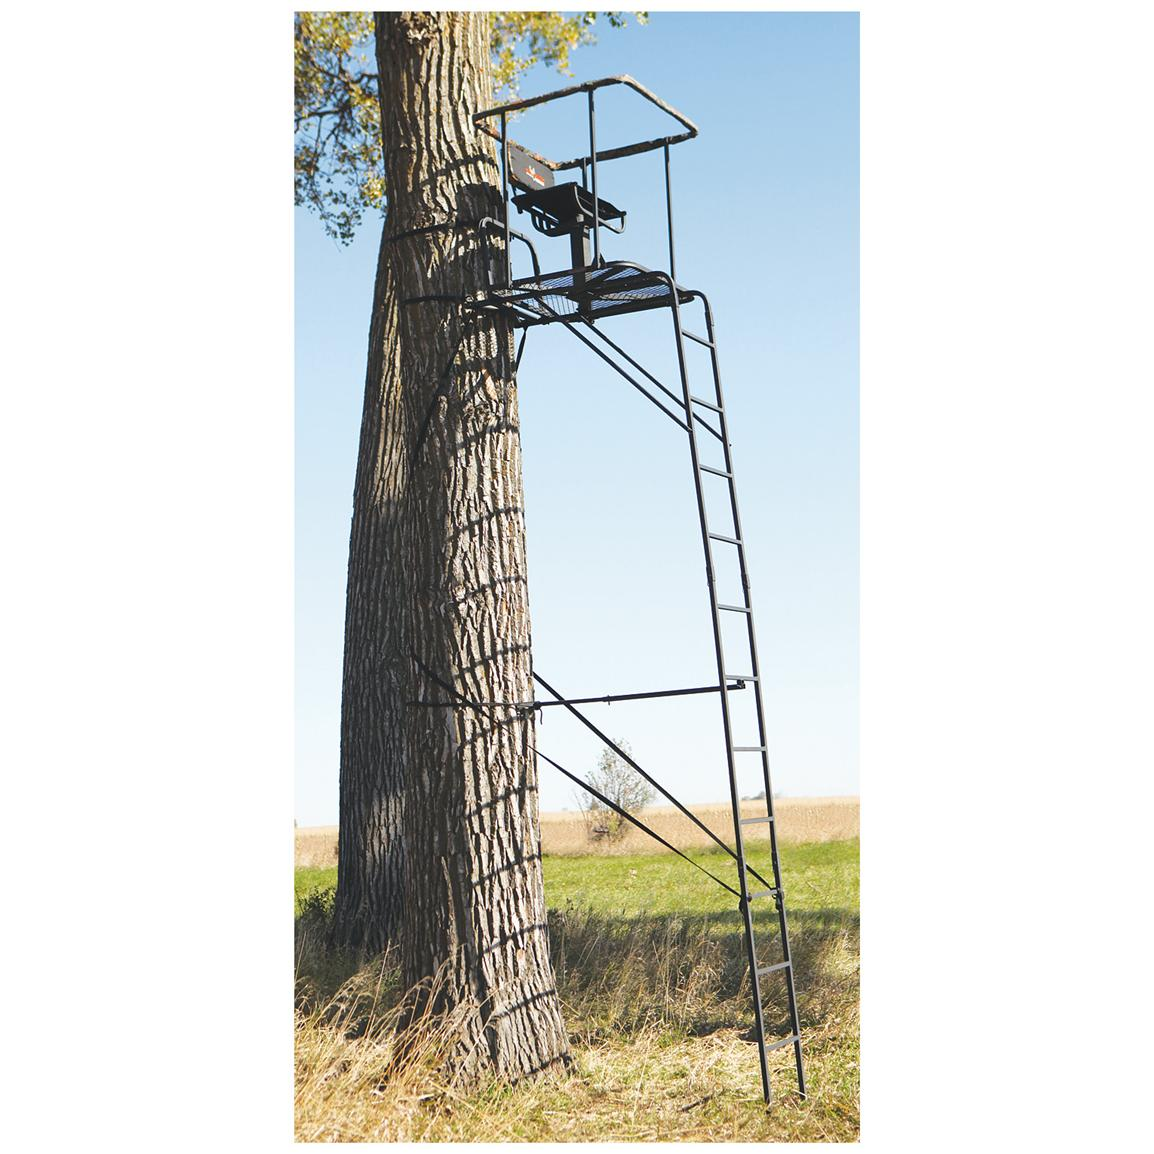 Big Game Infinity 16' Ladder Tree Stand • 300-lb. capacity